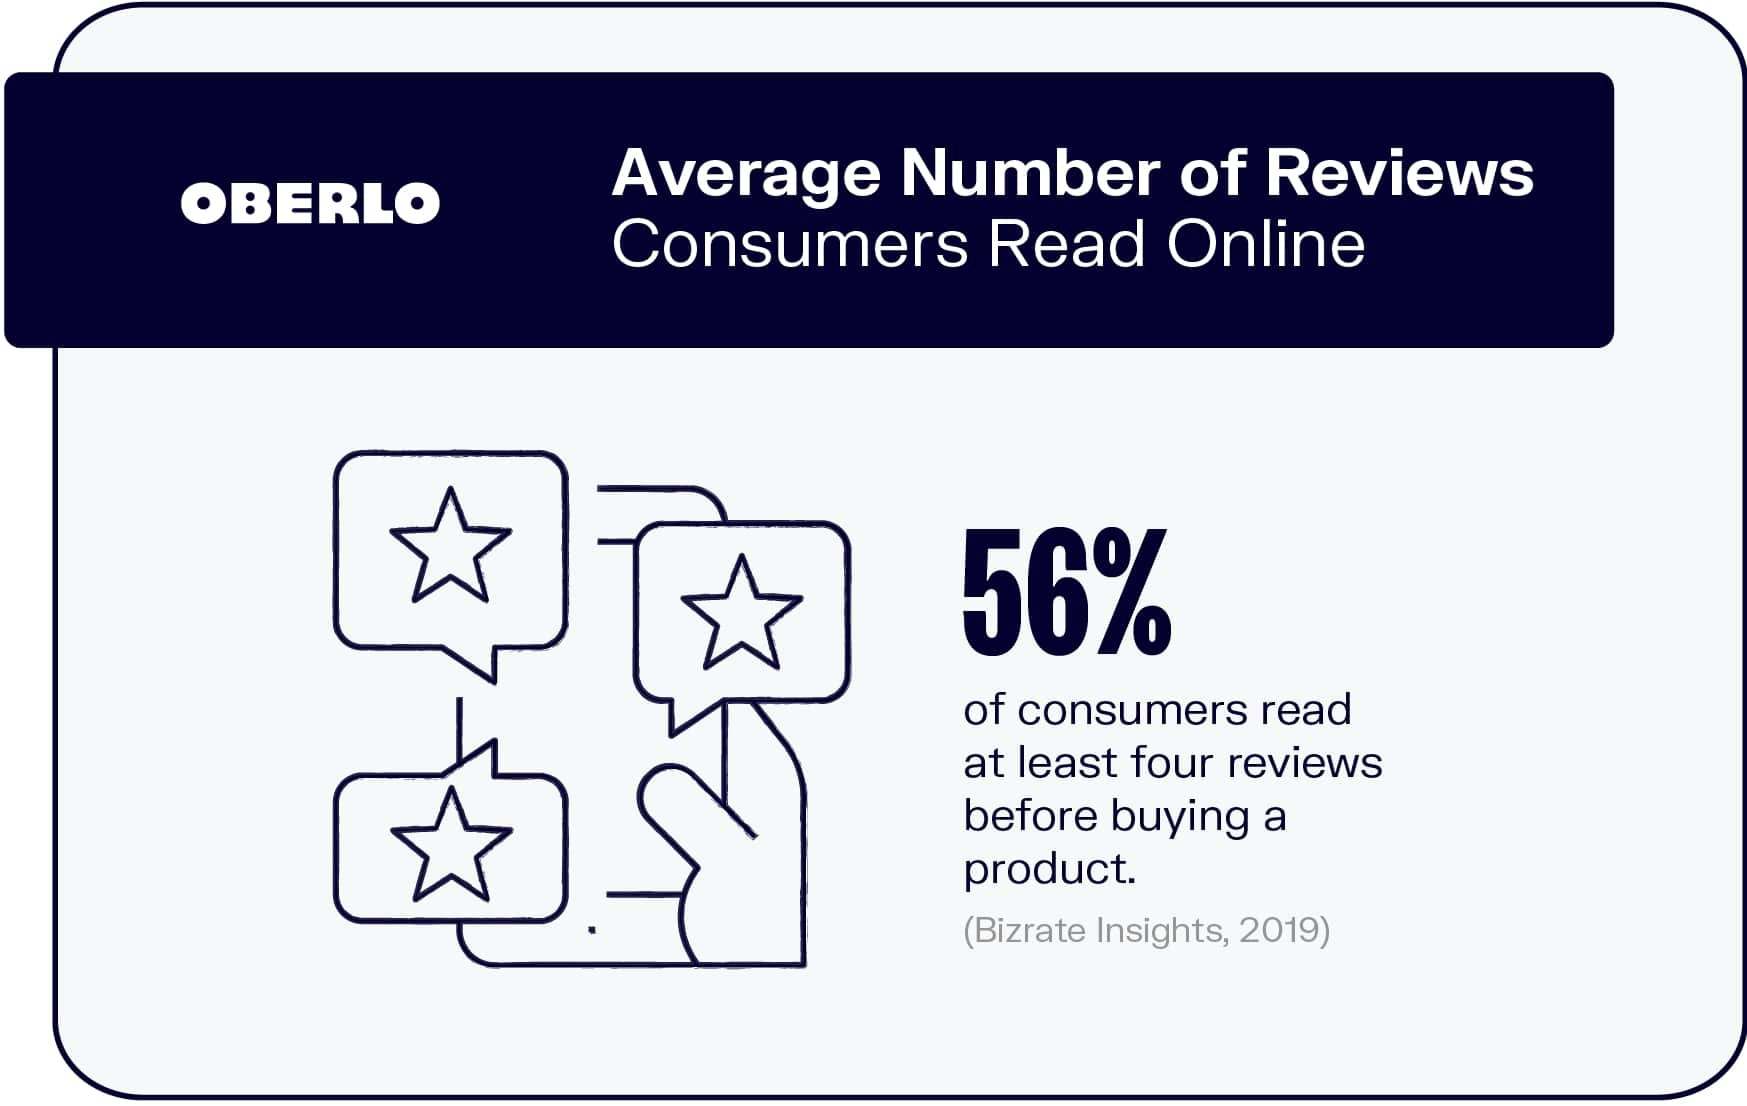 Average Number of Reviews Consumers Read Online